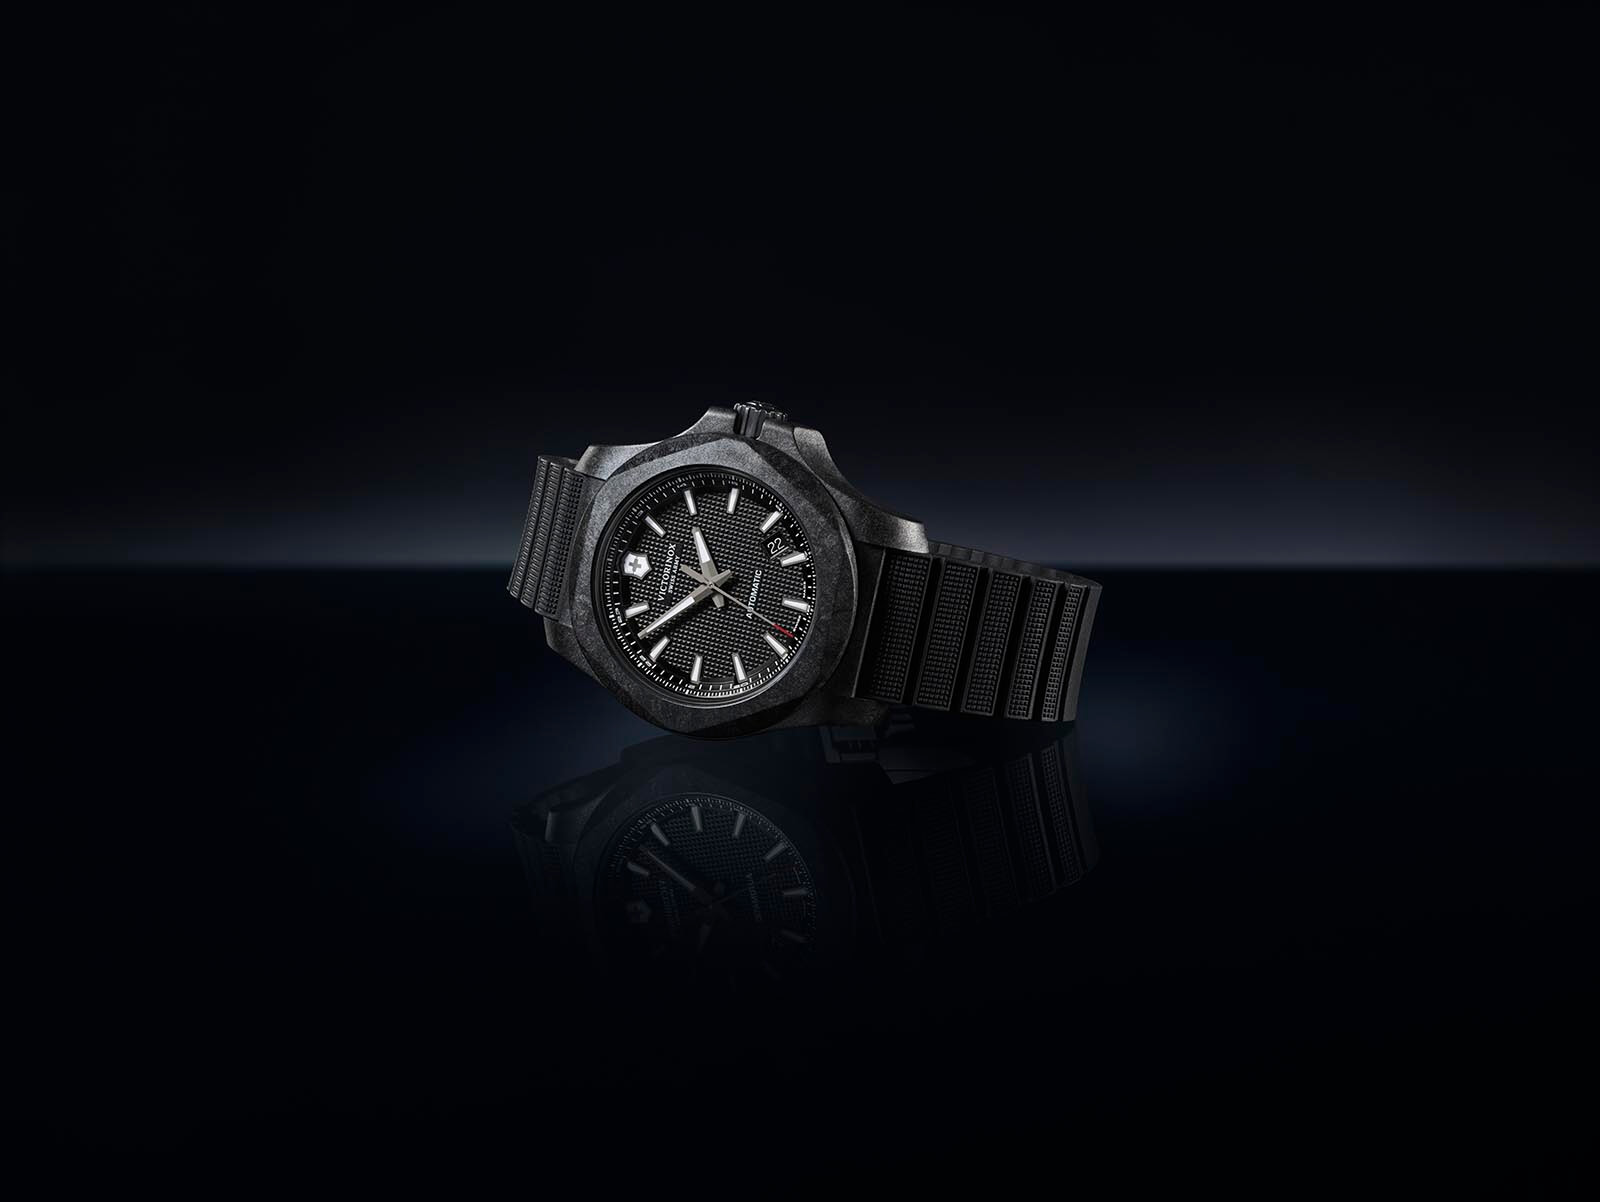 Victorinox I.N.O.X. Carbon Mechanical portada